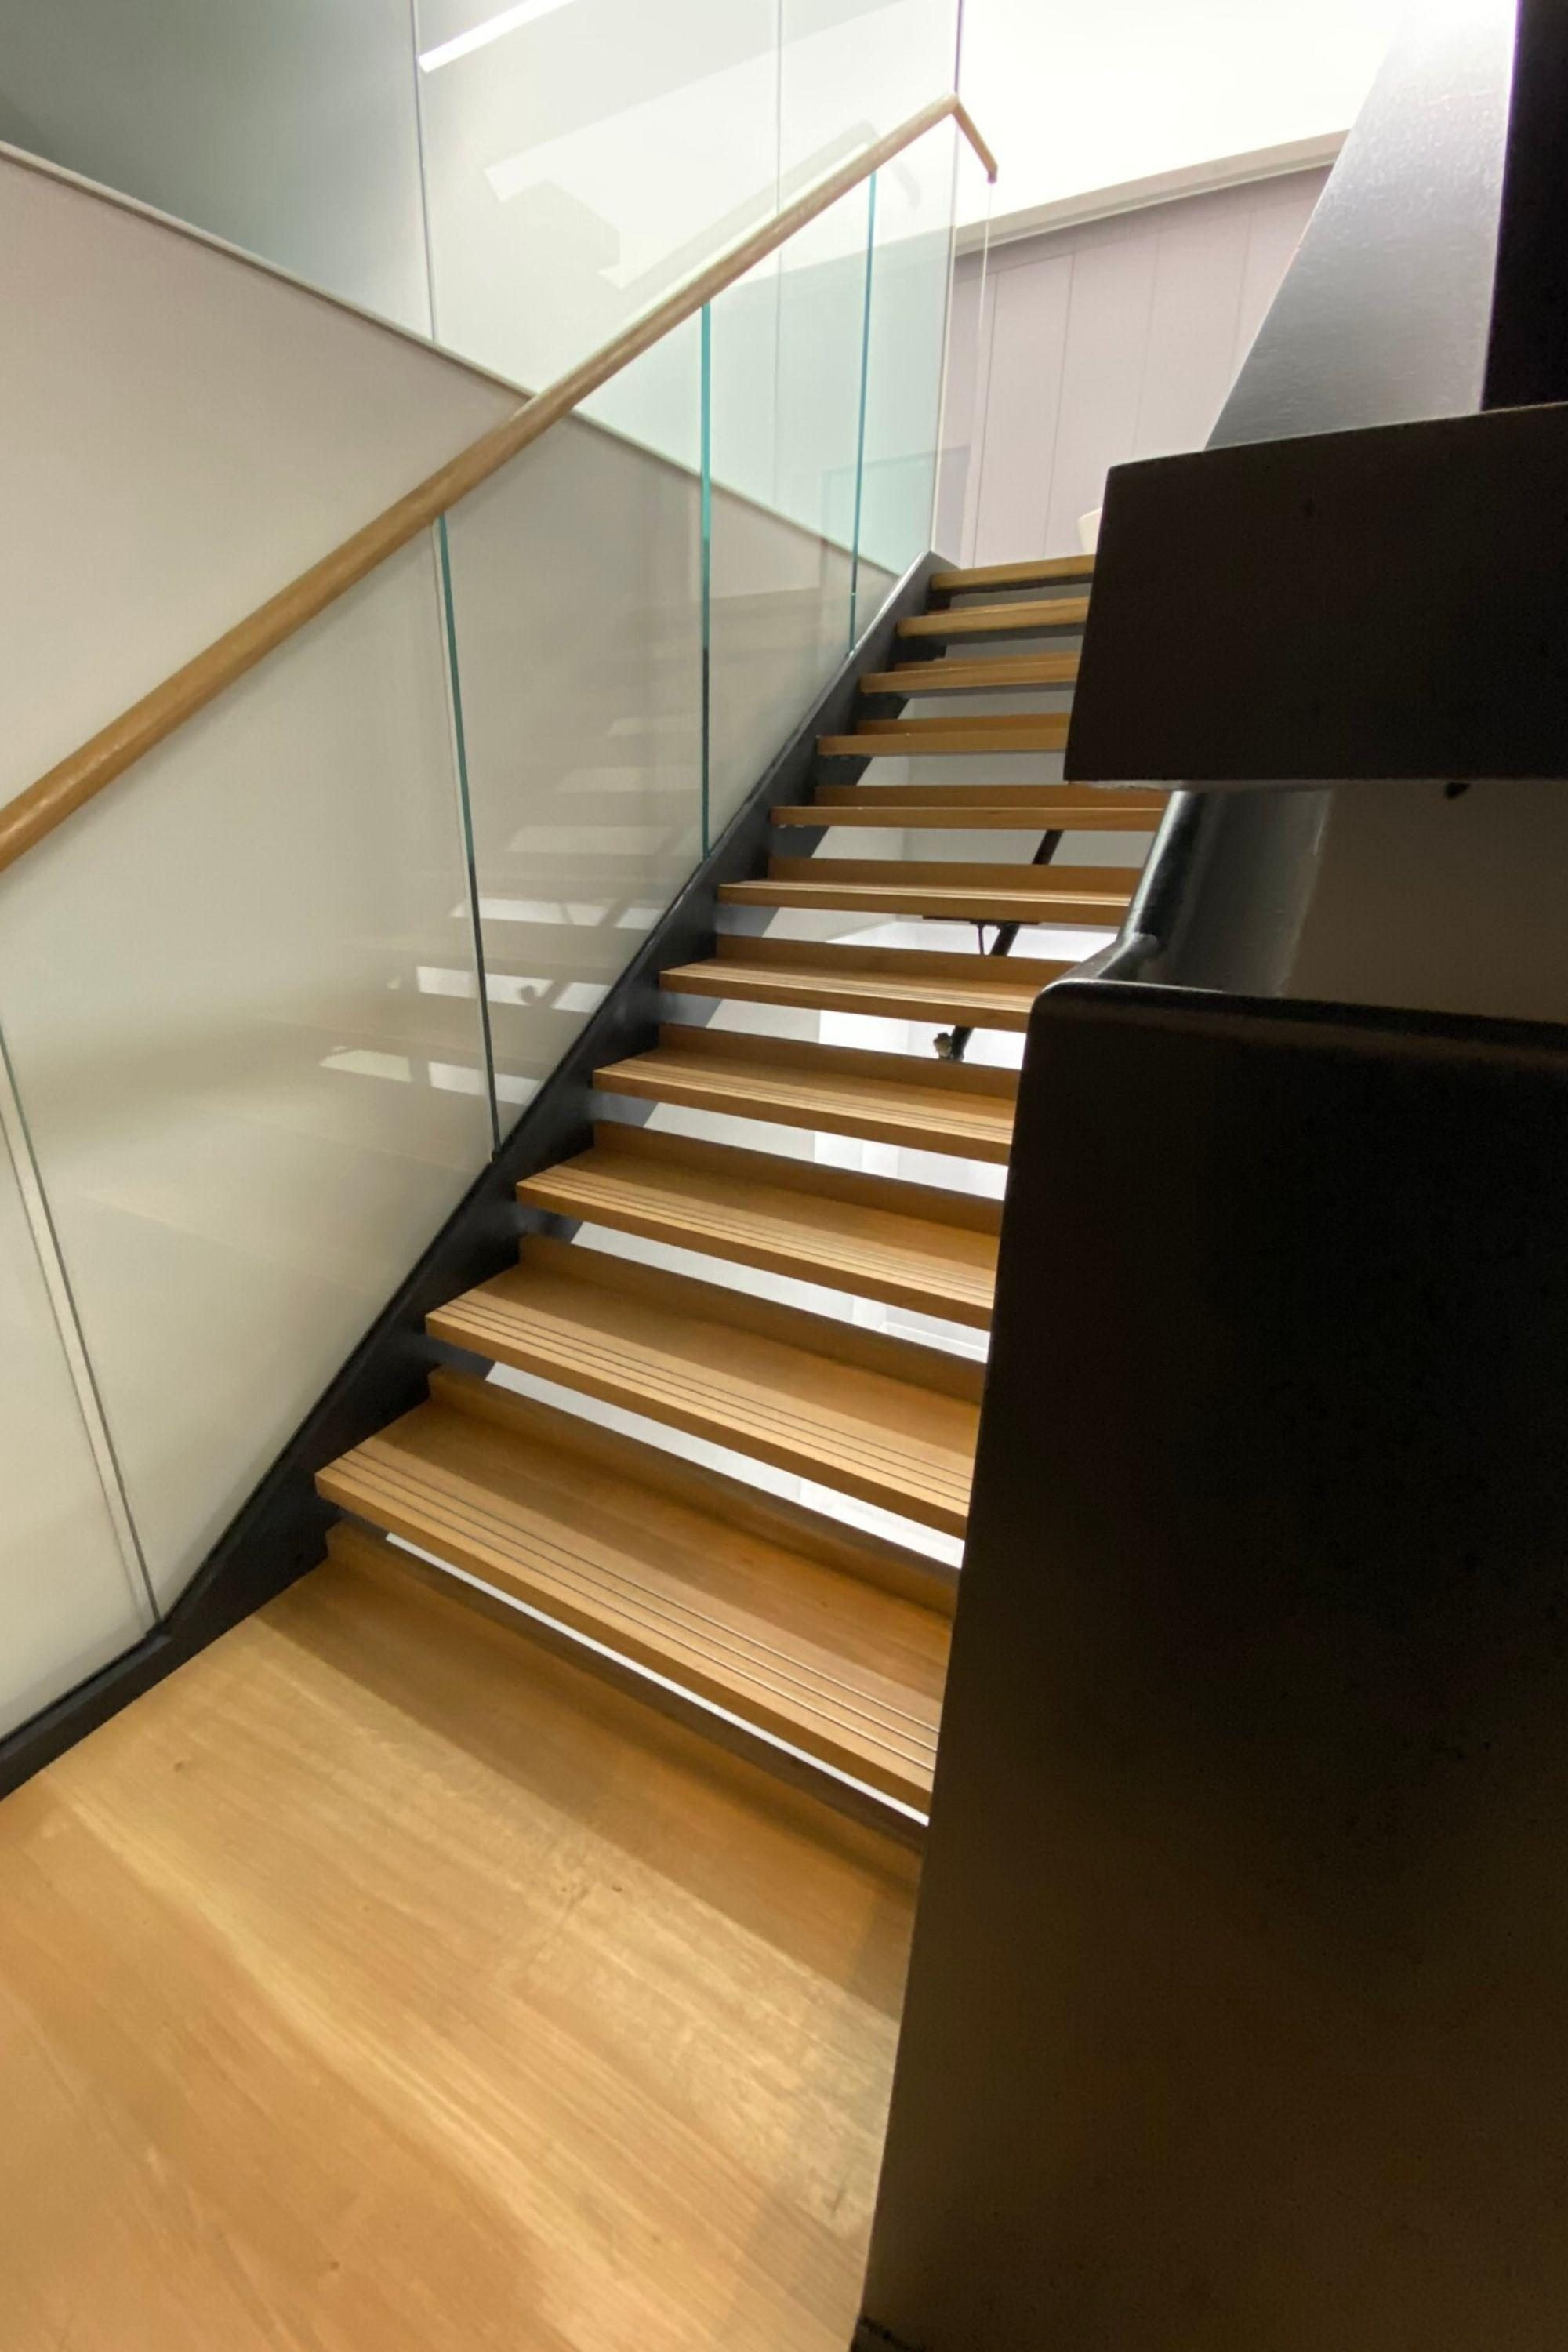 Fit out office staircase with open risers